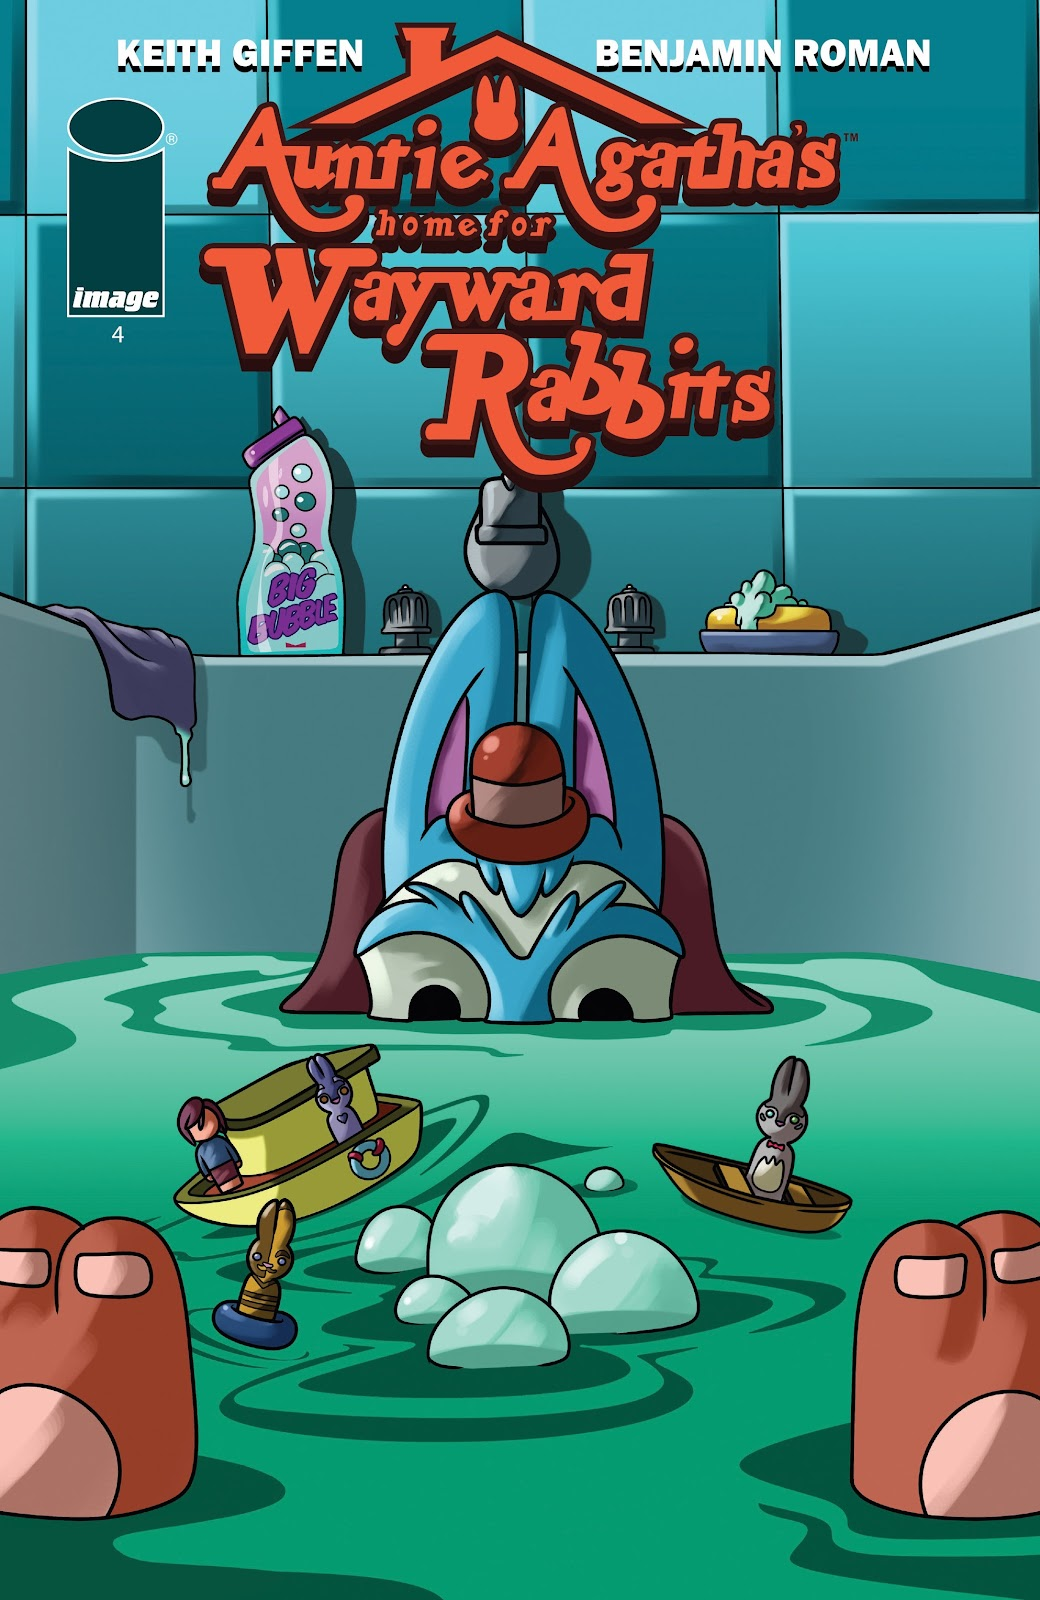 Read online Auntie Agatha's Home For Wayward Rabbits comic -  Issue #4 - 1